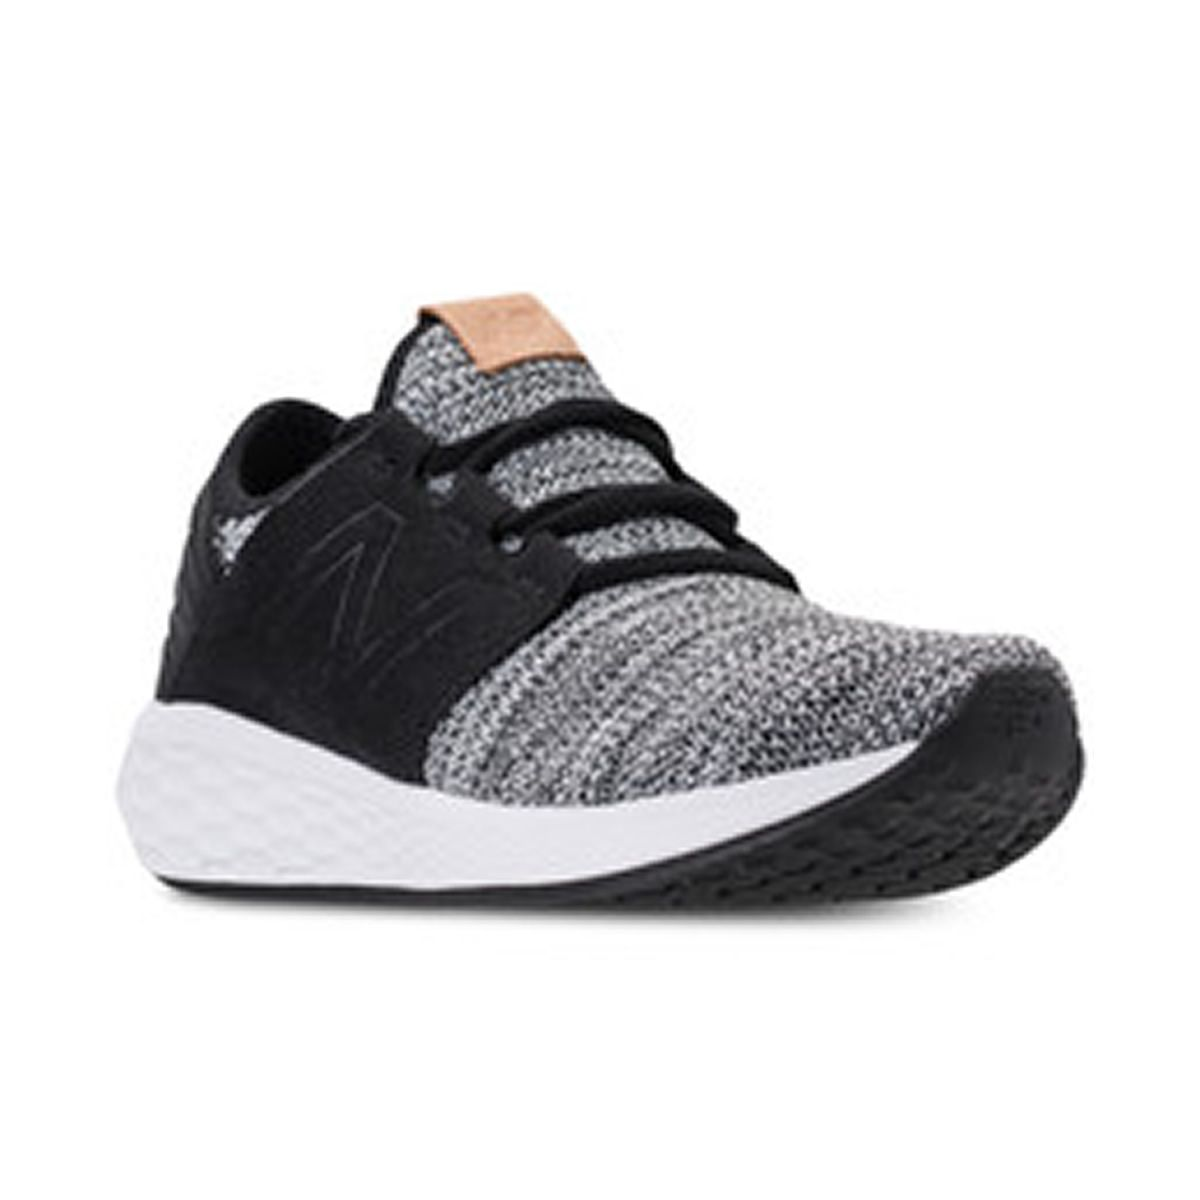 Finish Line Shoes for Men - Macy s 9327f80f3